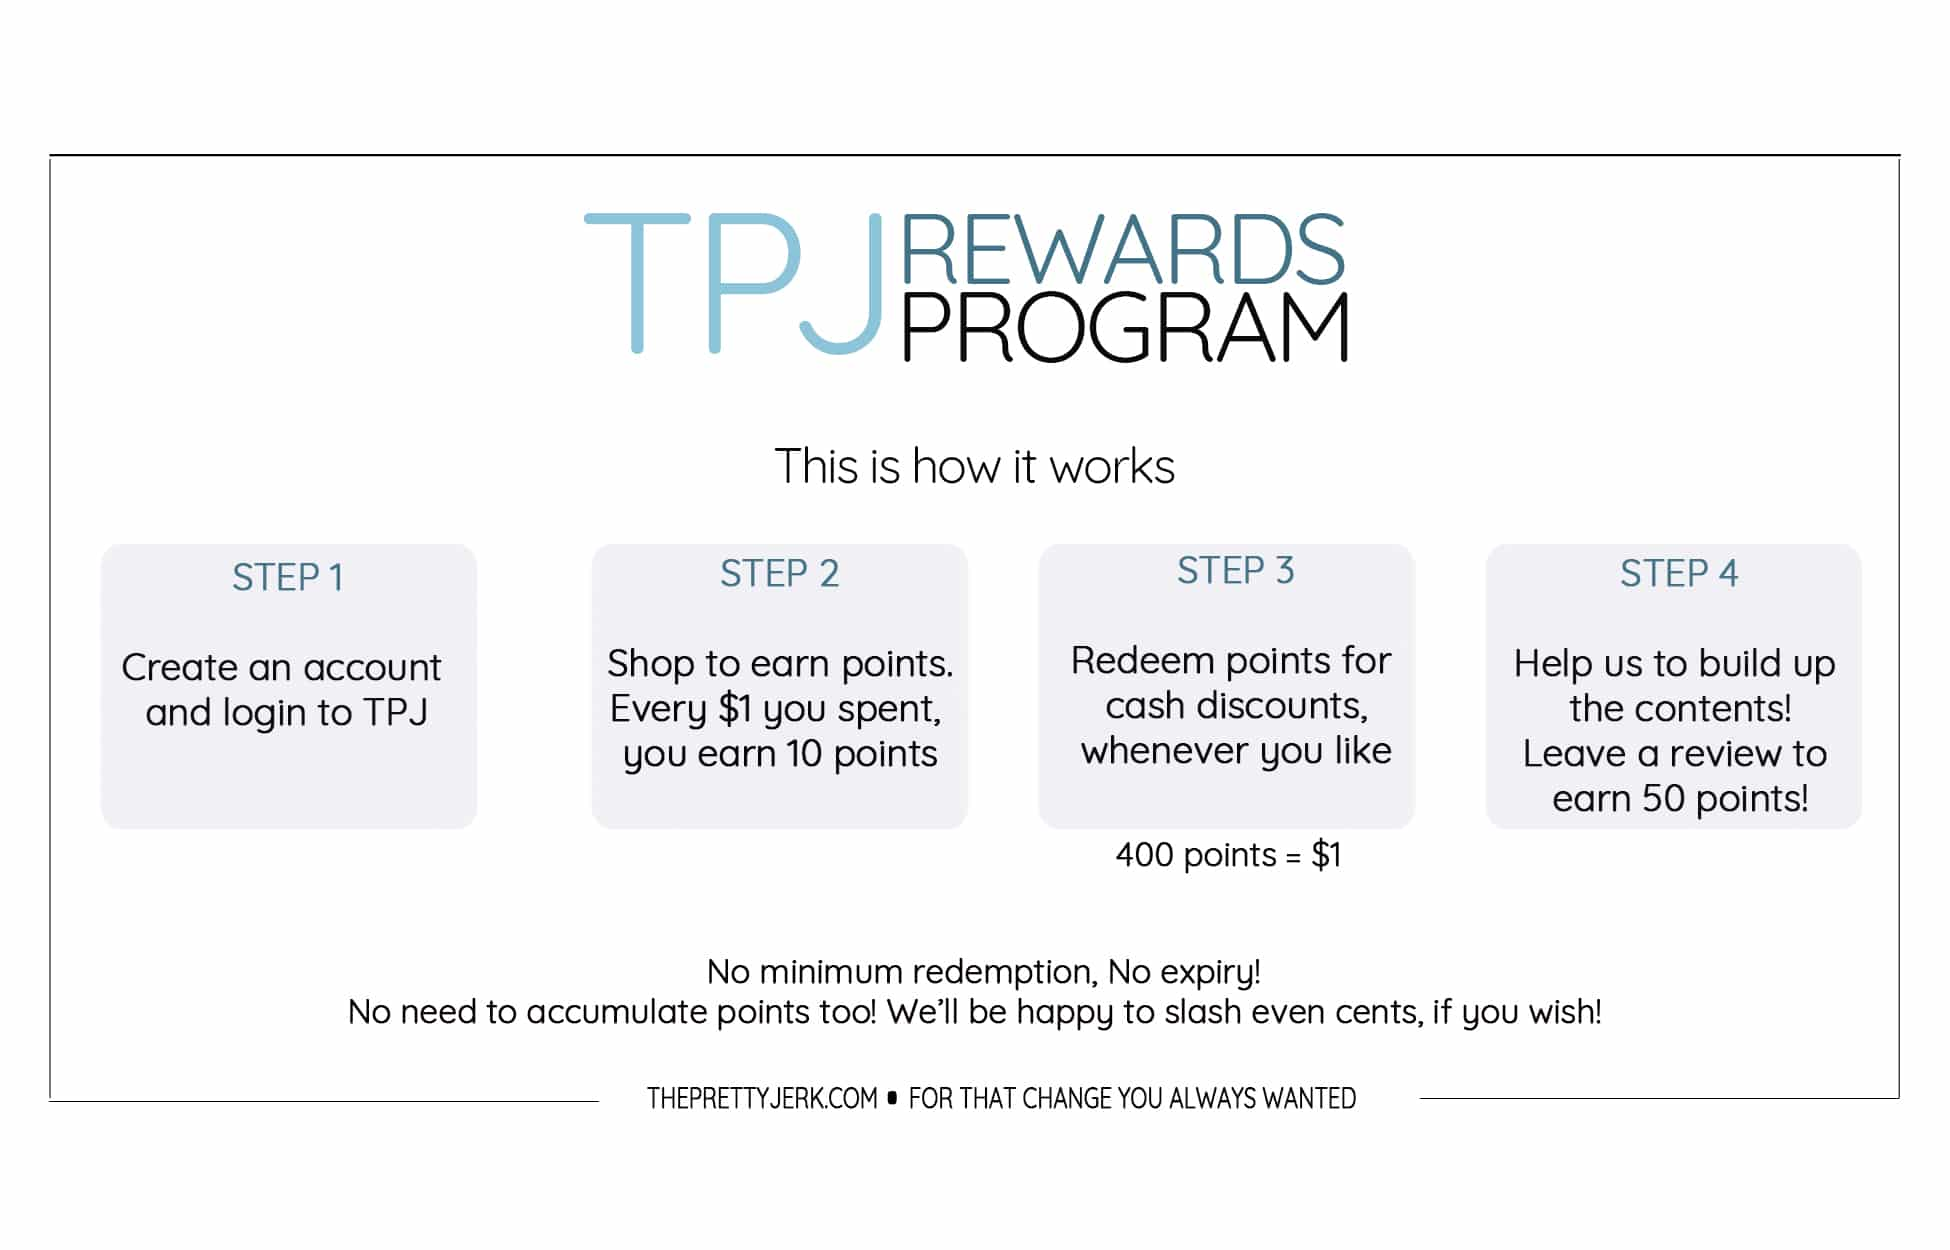 TPJ rewards program